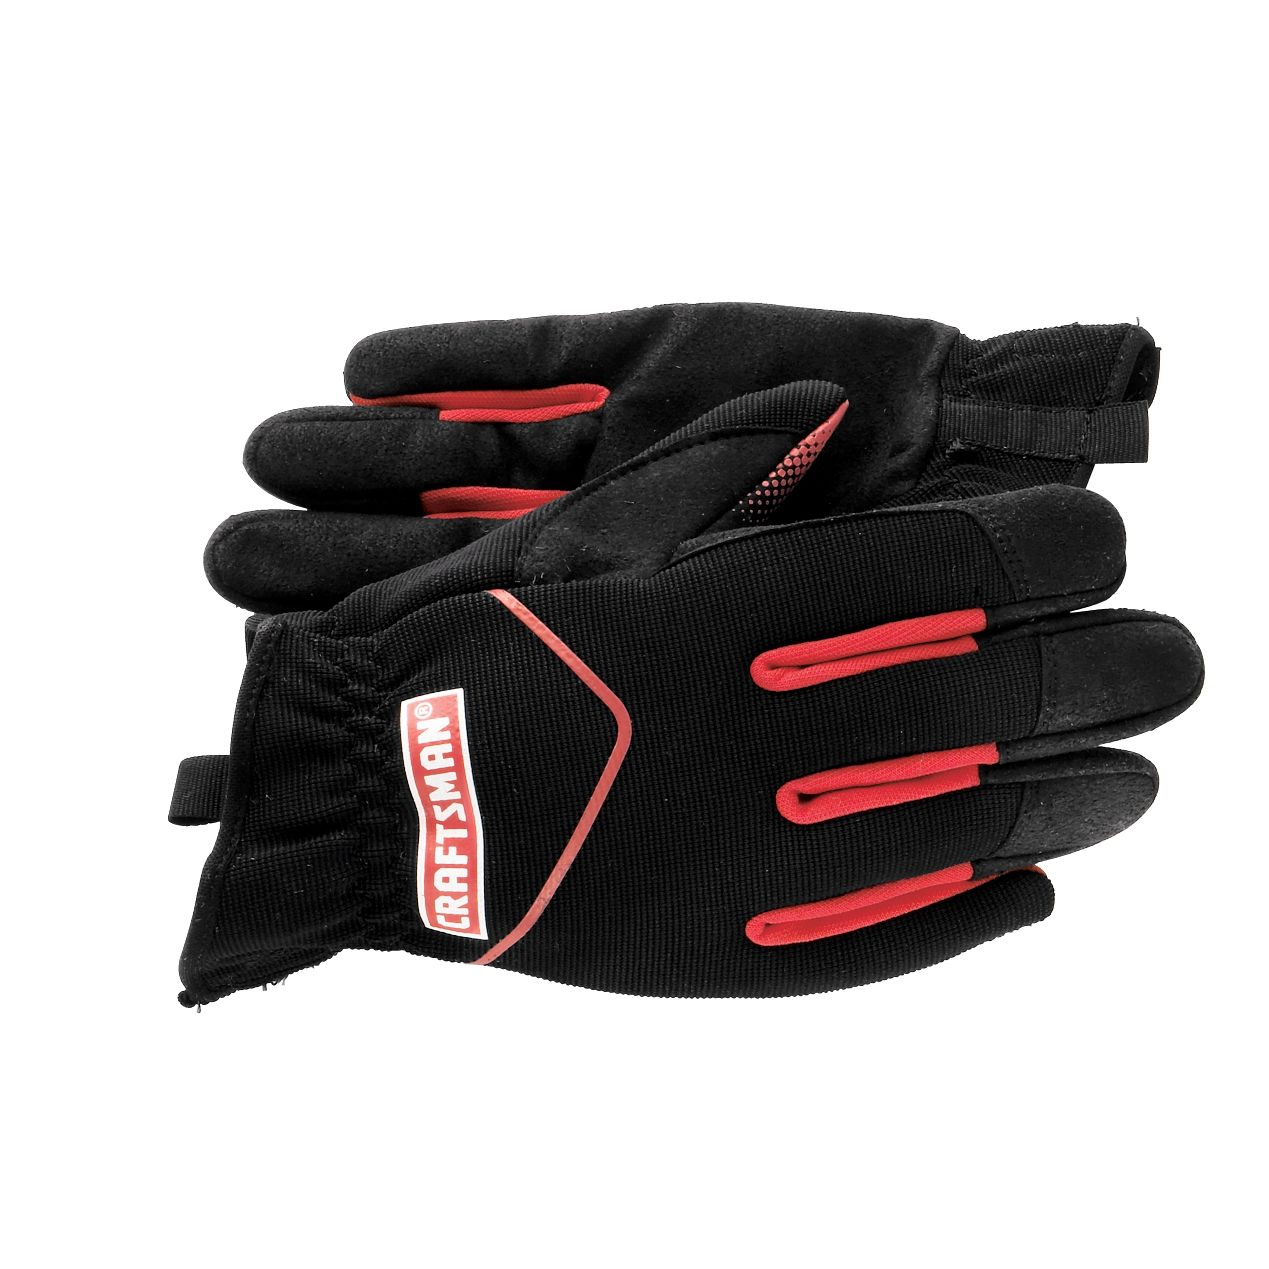 Craftsman  Black Mechanics Utility Glove, Large/Xtra-Large $8.49 + Free Shipping at Sears